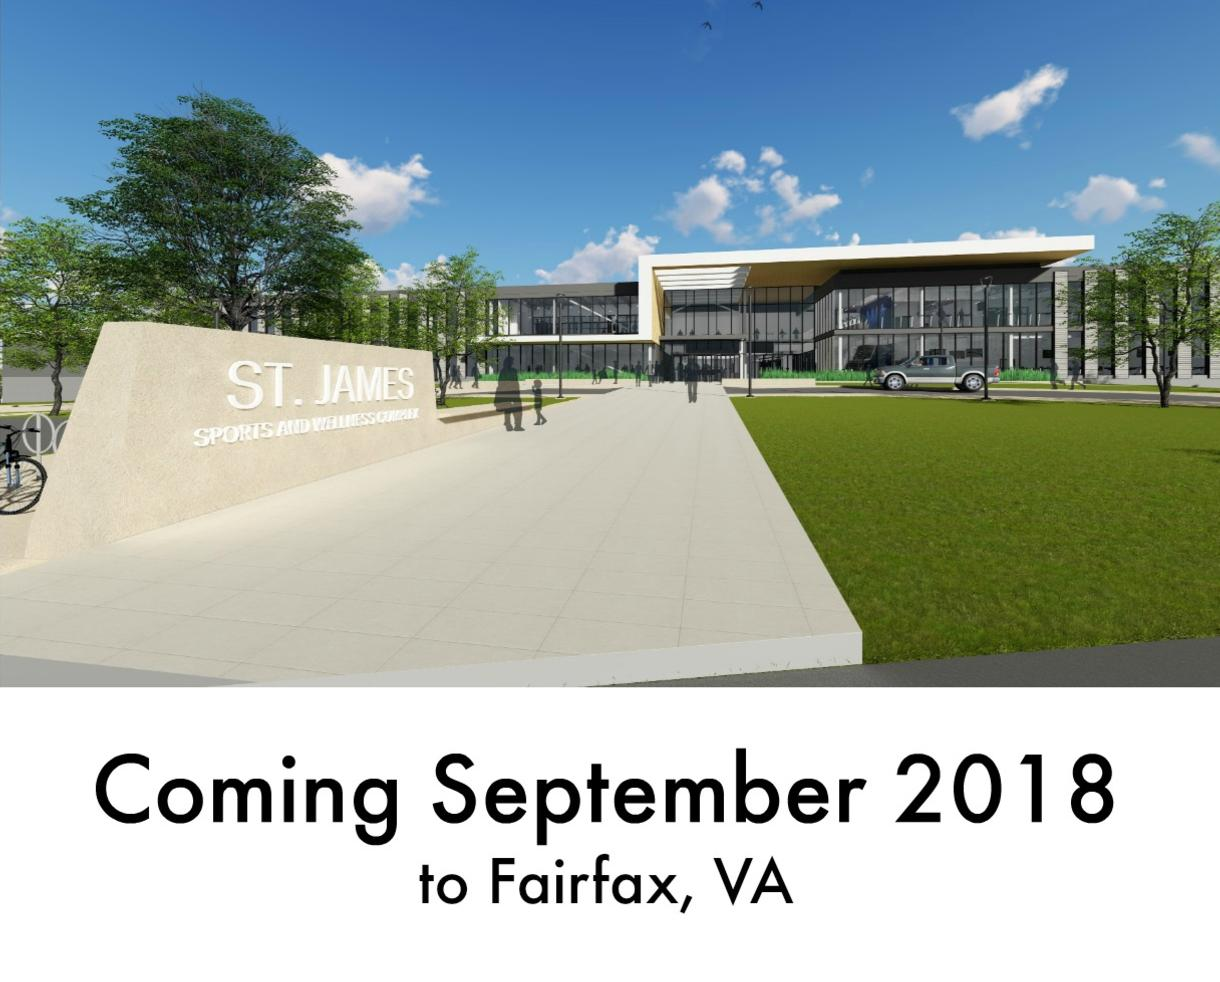 Introducing THE ST. JAMES: A One-Stop Destination for Families in Fairfax, VA